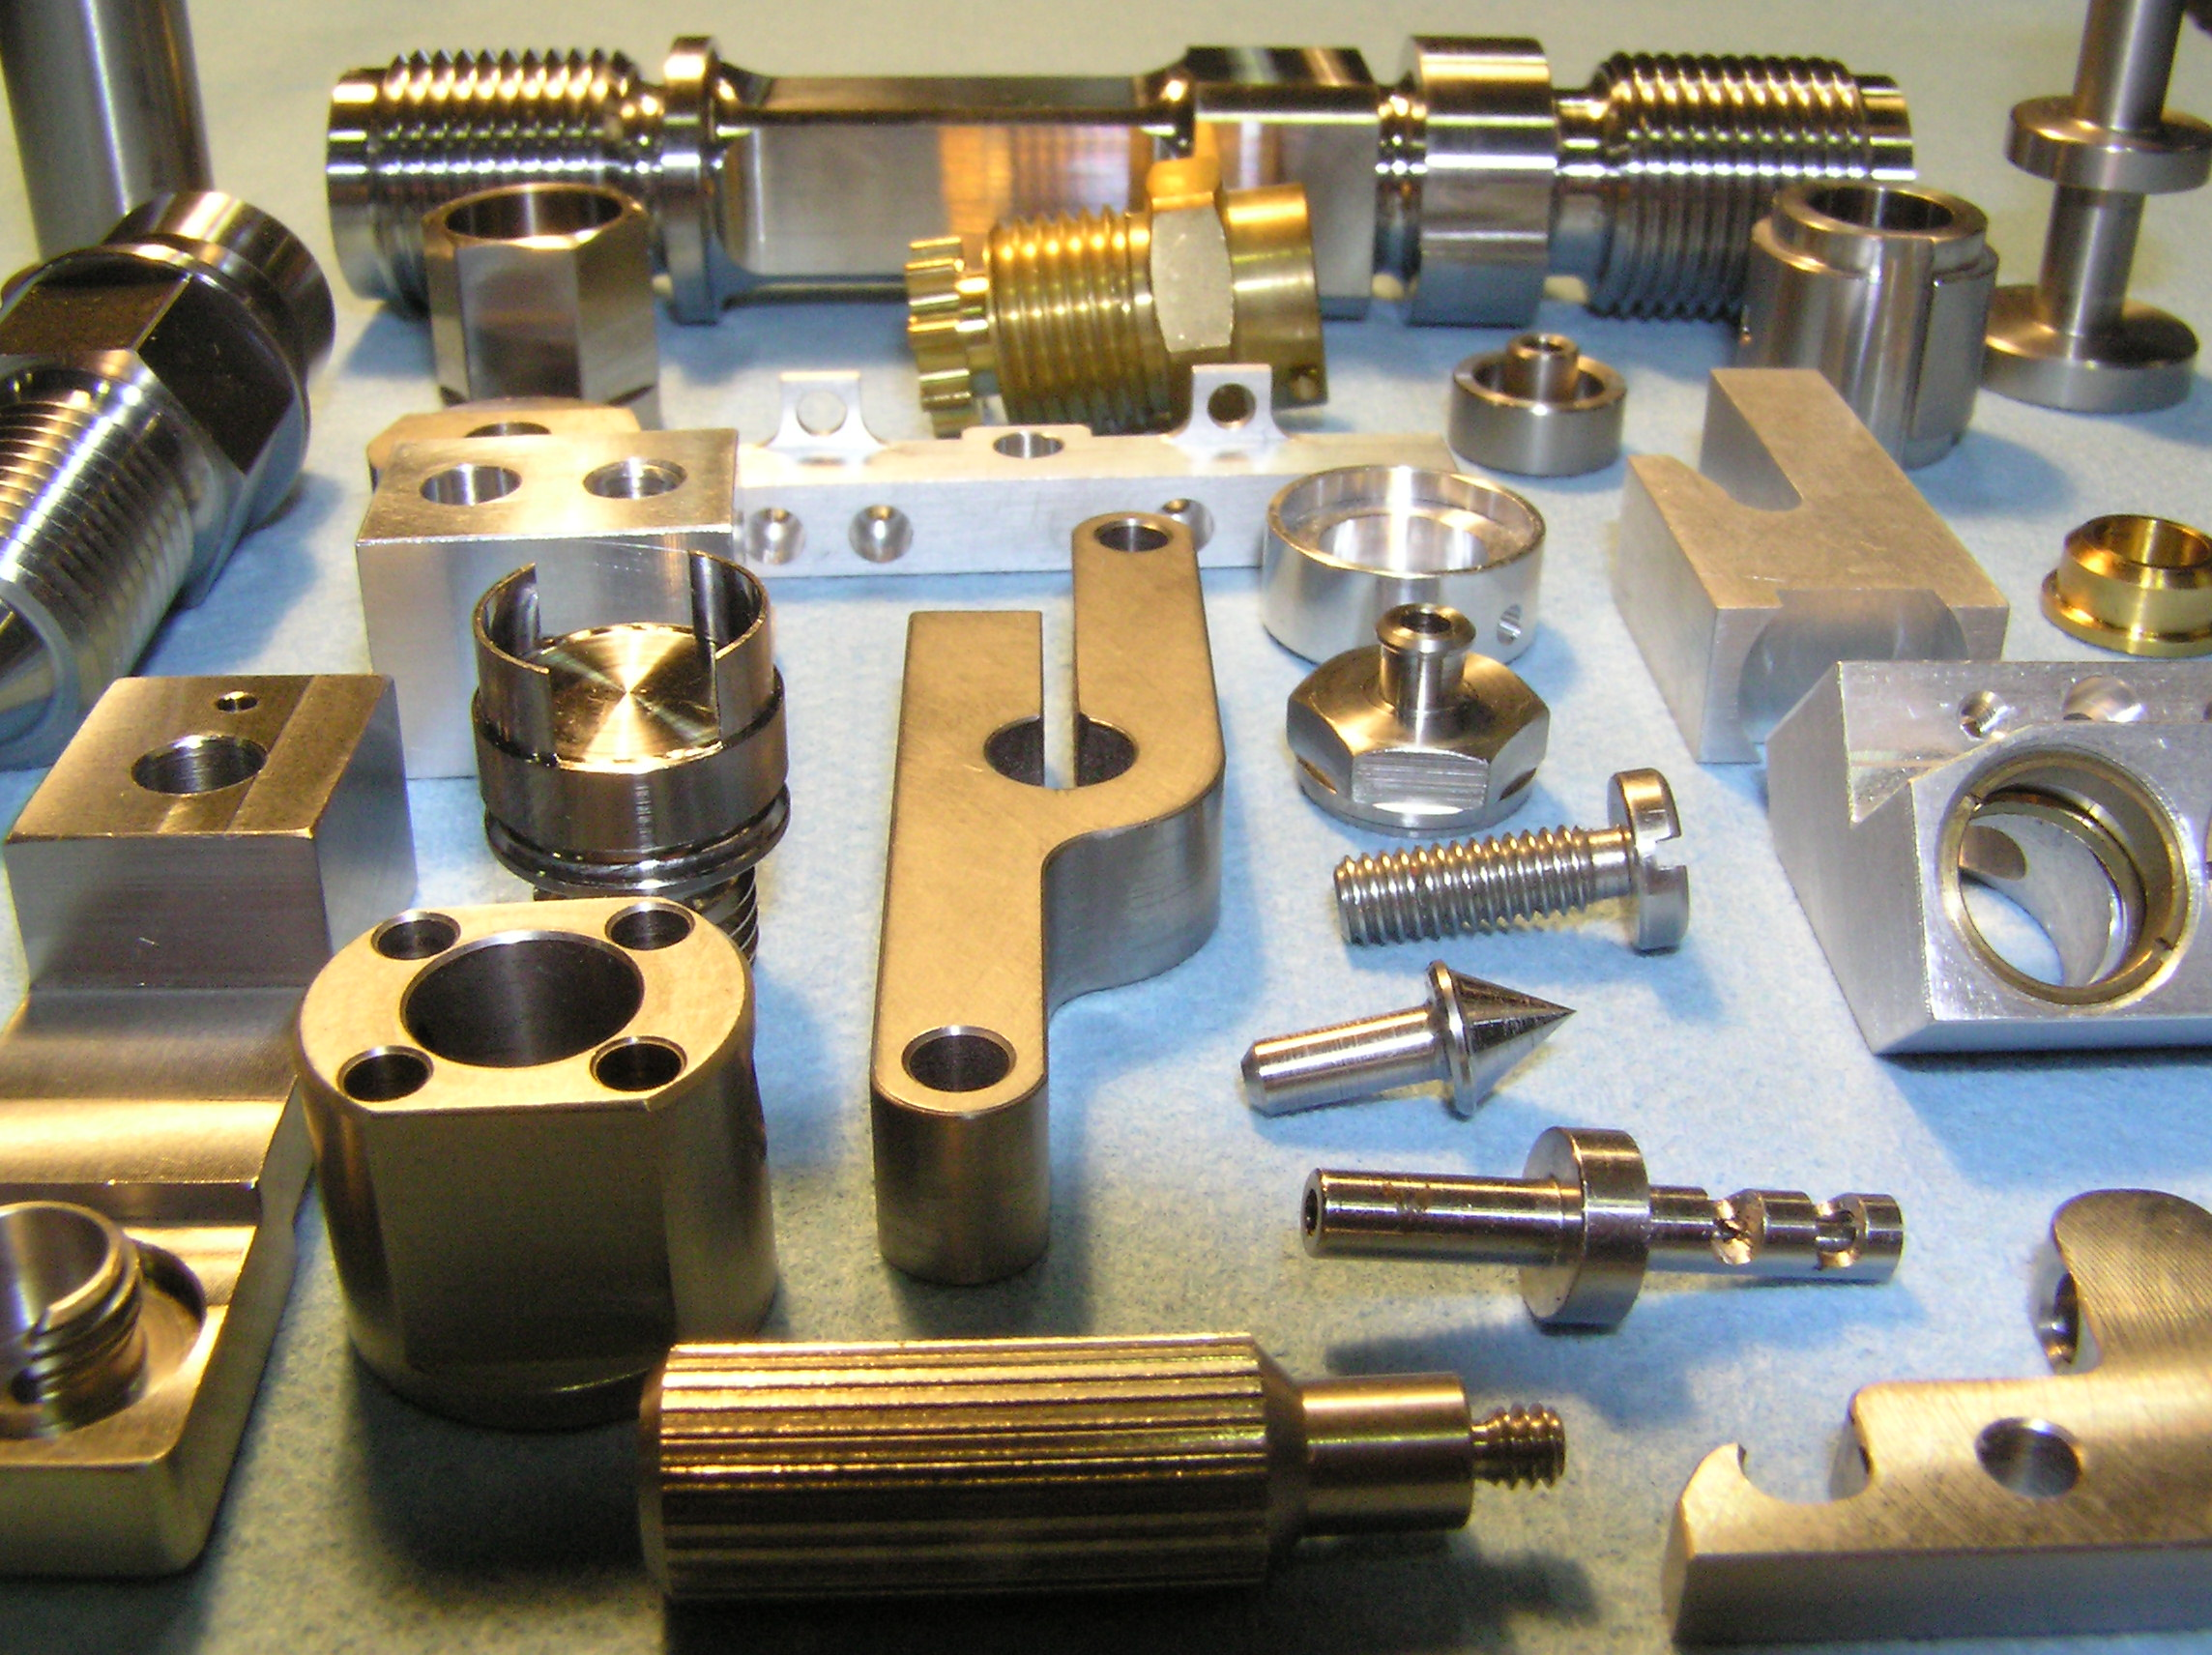 Services - CNC Mill/Lathe Production, CNC Swiss Screw Machining, Reverse Engineering, Prototype, Turn-Key Manufacturing, Metal Fabrication and Production Sawing.